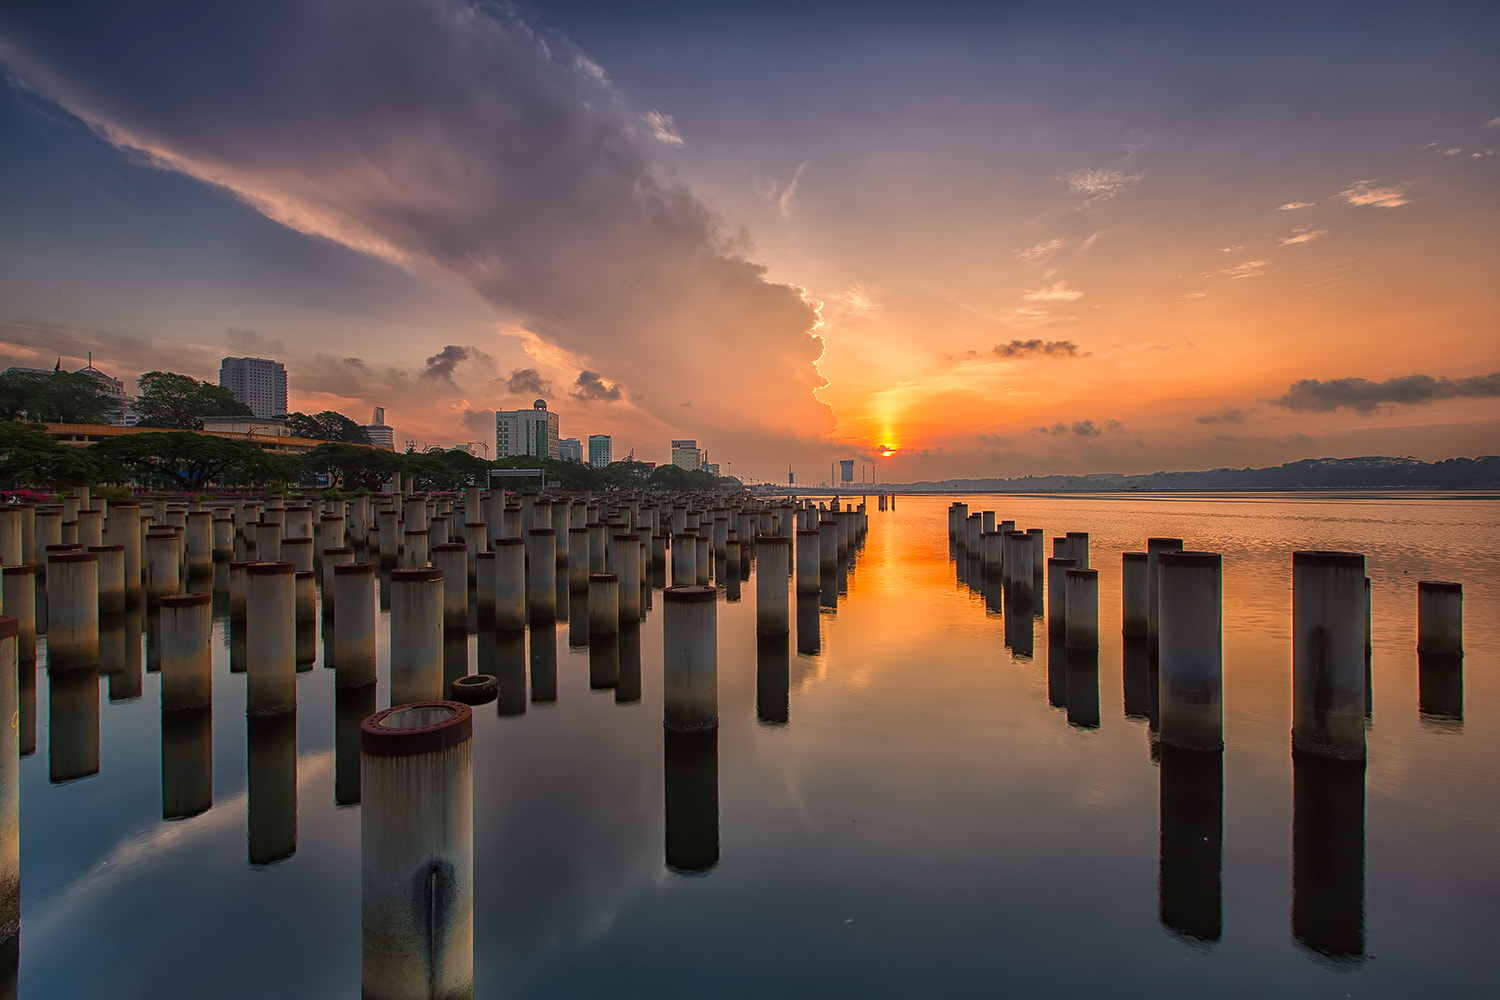 Photograph Sunrise Path by Jacobs LB on 500px